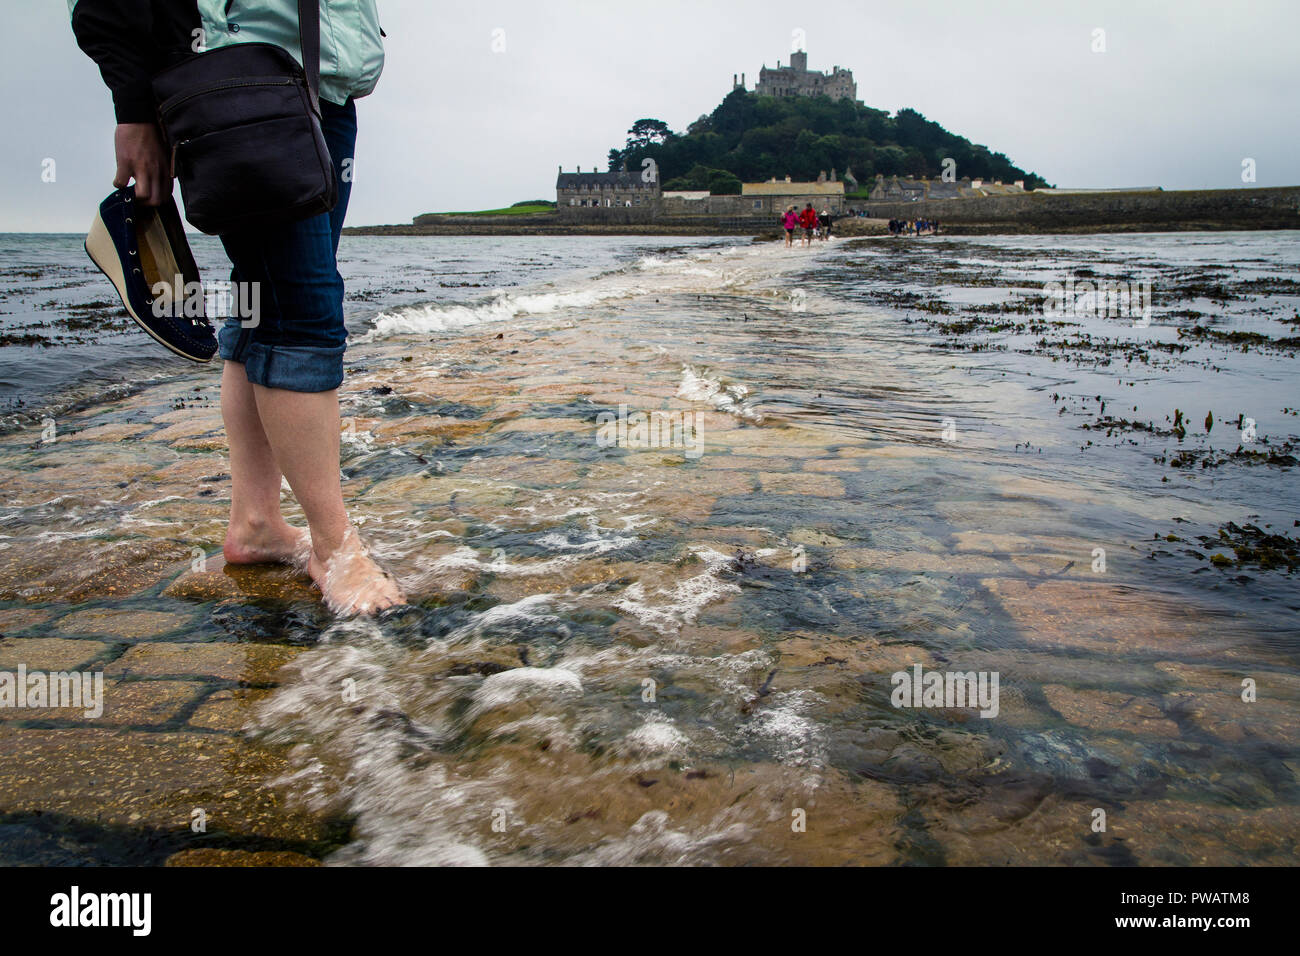 Barefooted female tourist crossing the causeway to St. Michael's Mount while it is being flooded by the high tide, Cornwall, UK - Stock Image